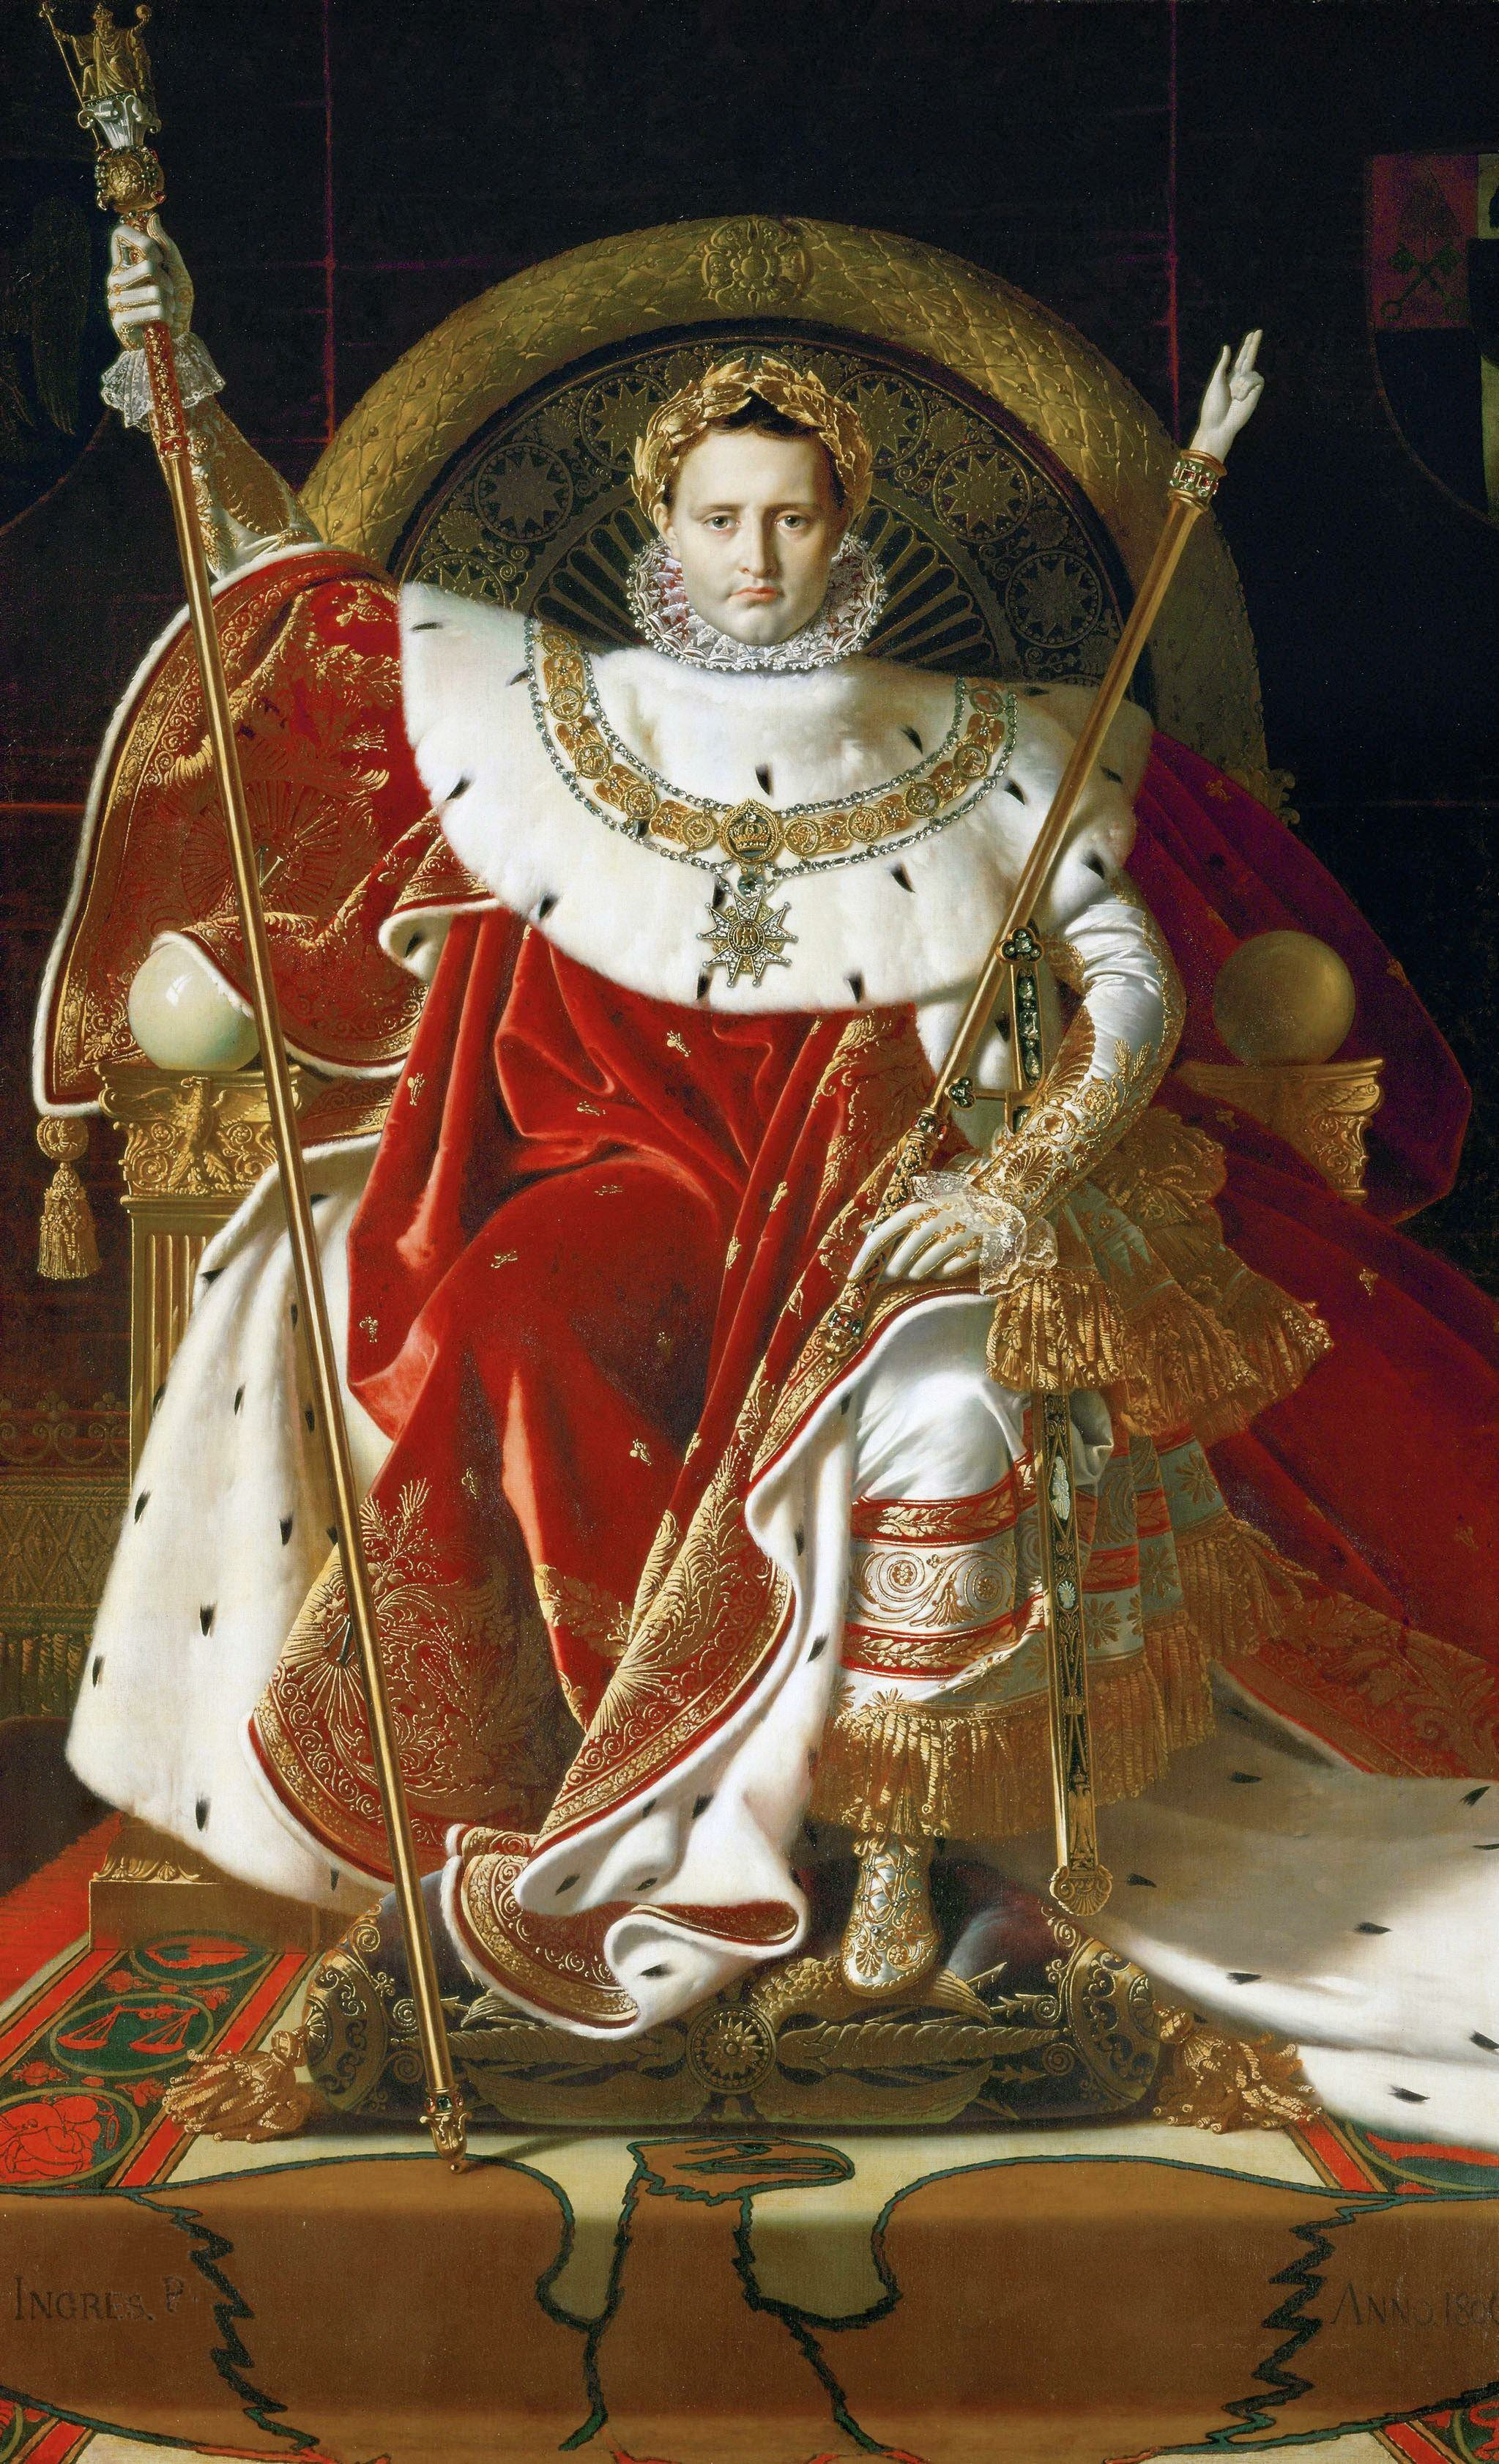 Napoleon on his Imperial throne. Jean Auguste Dominique Ingres (1780-1867).